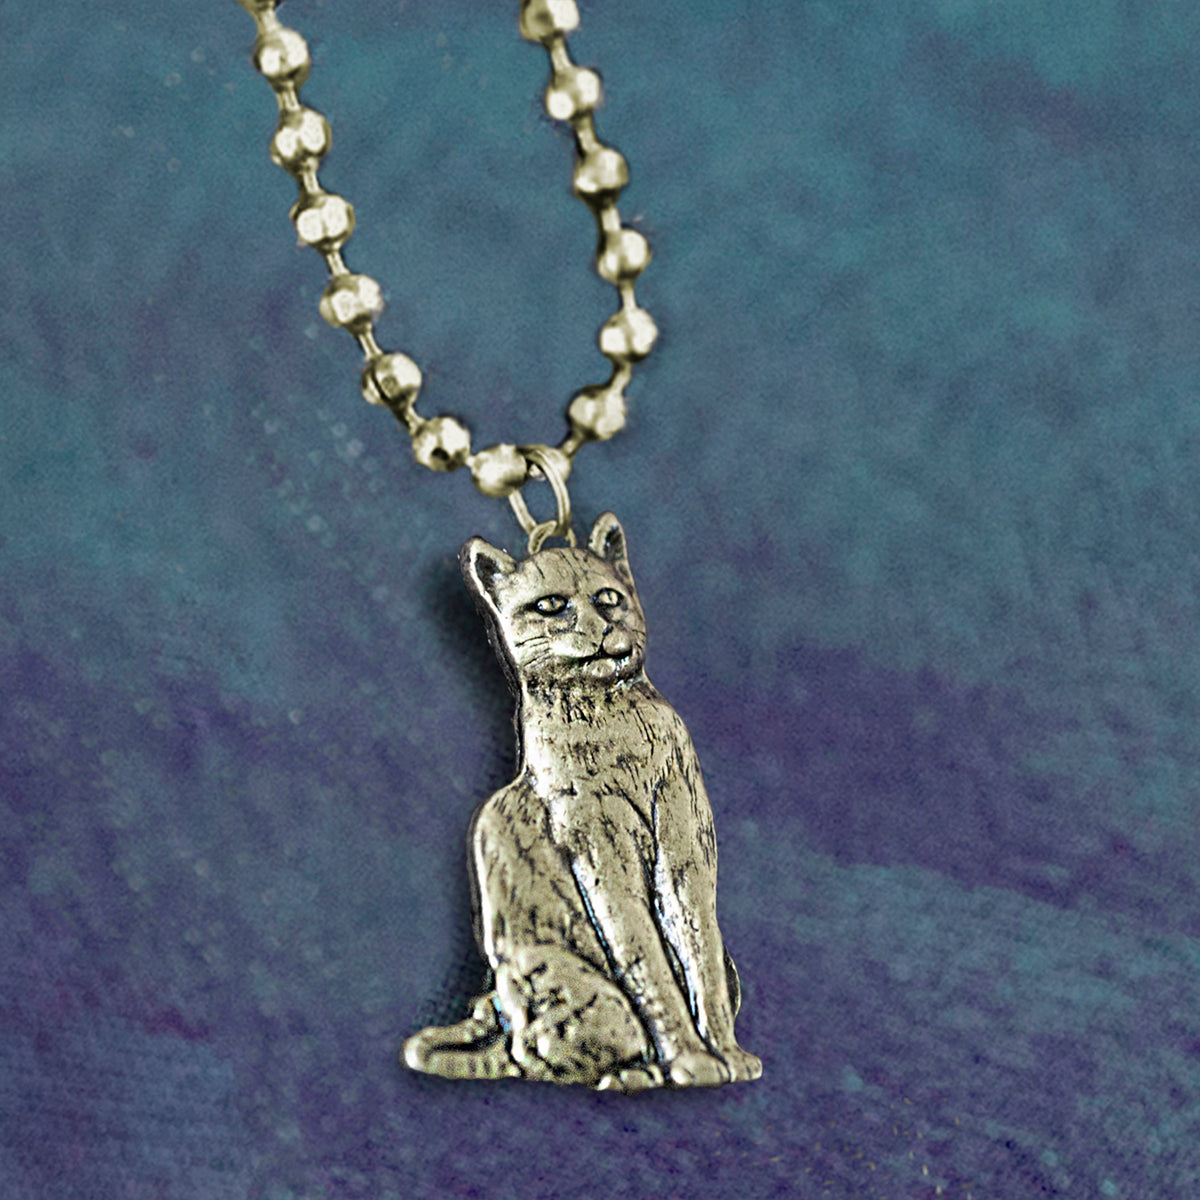 Dainty Vintage Cat Necklace - sweetromanceonlinejewelry